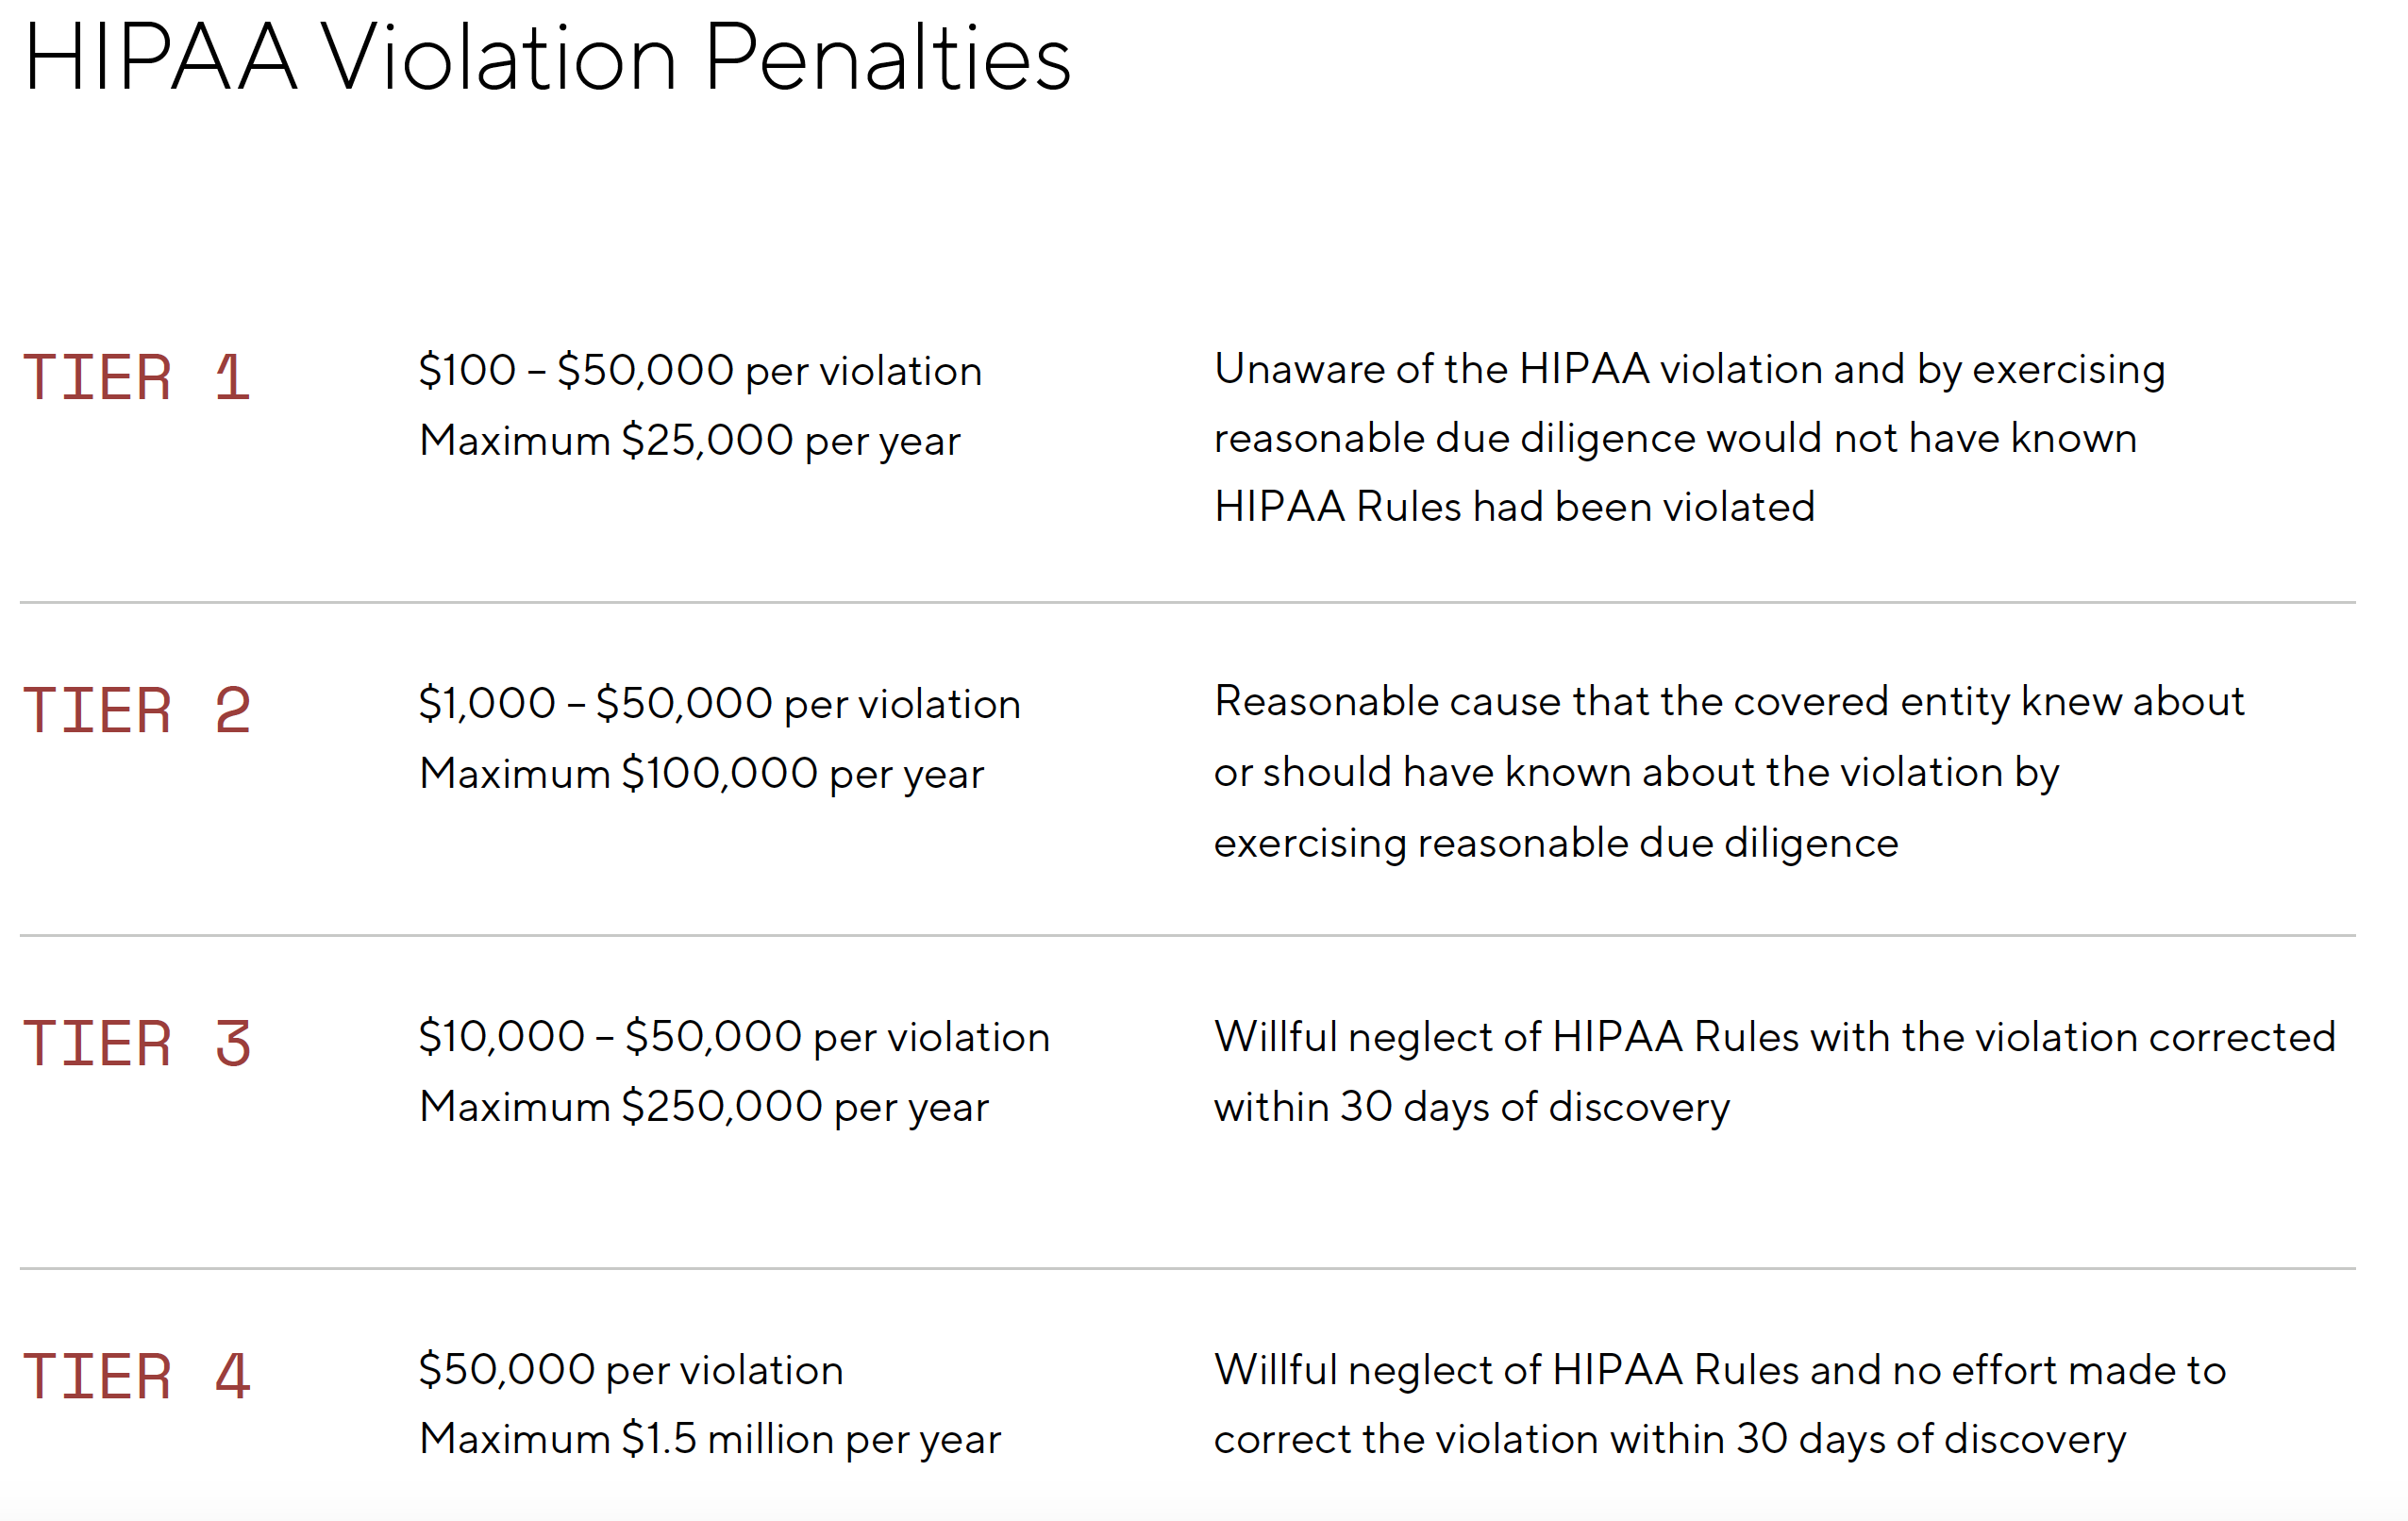 HIPAA Violation Penalty Conditions and Amounts